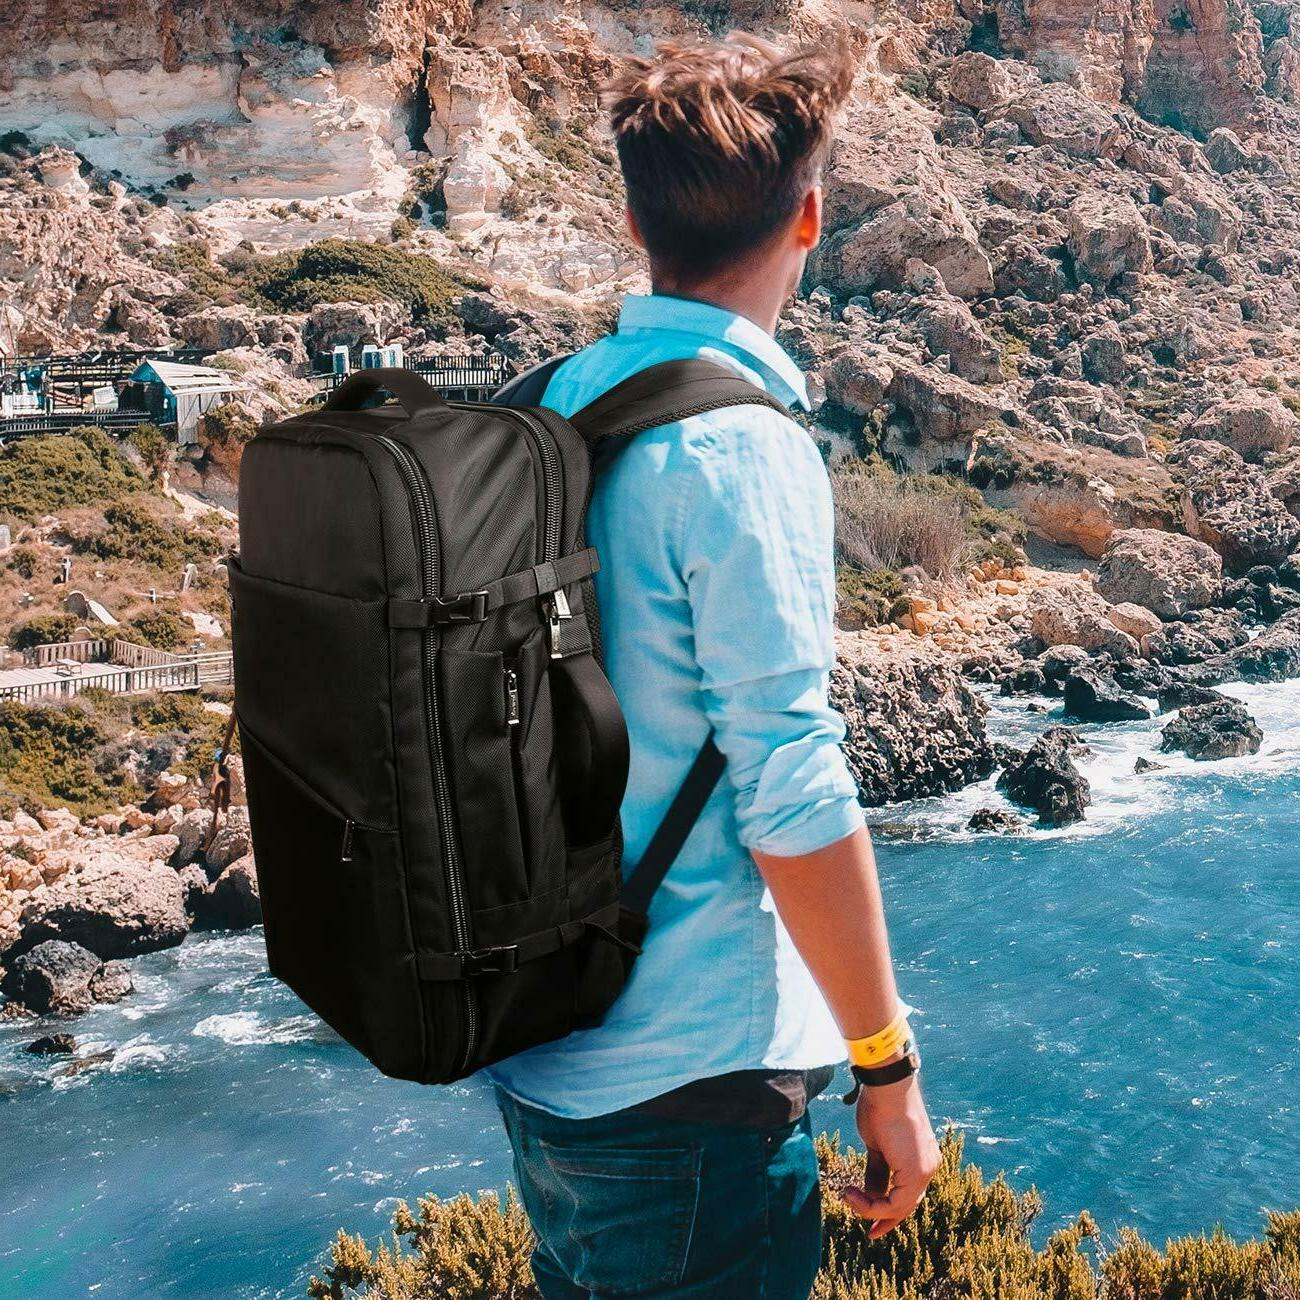 Inateck 40L Backpack, Flight Approved Carry-On Luggage Backpack